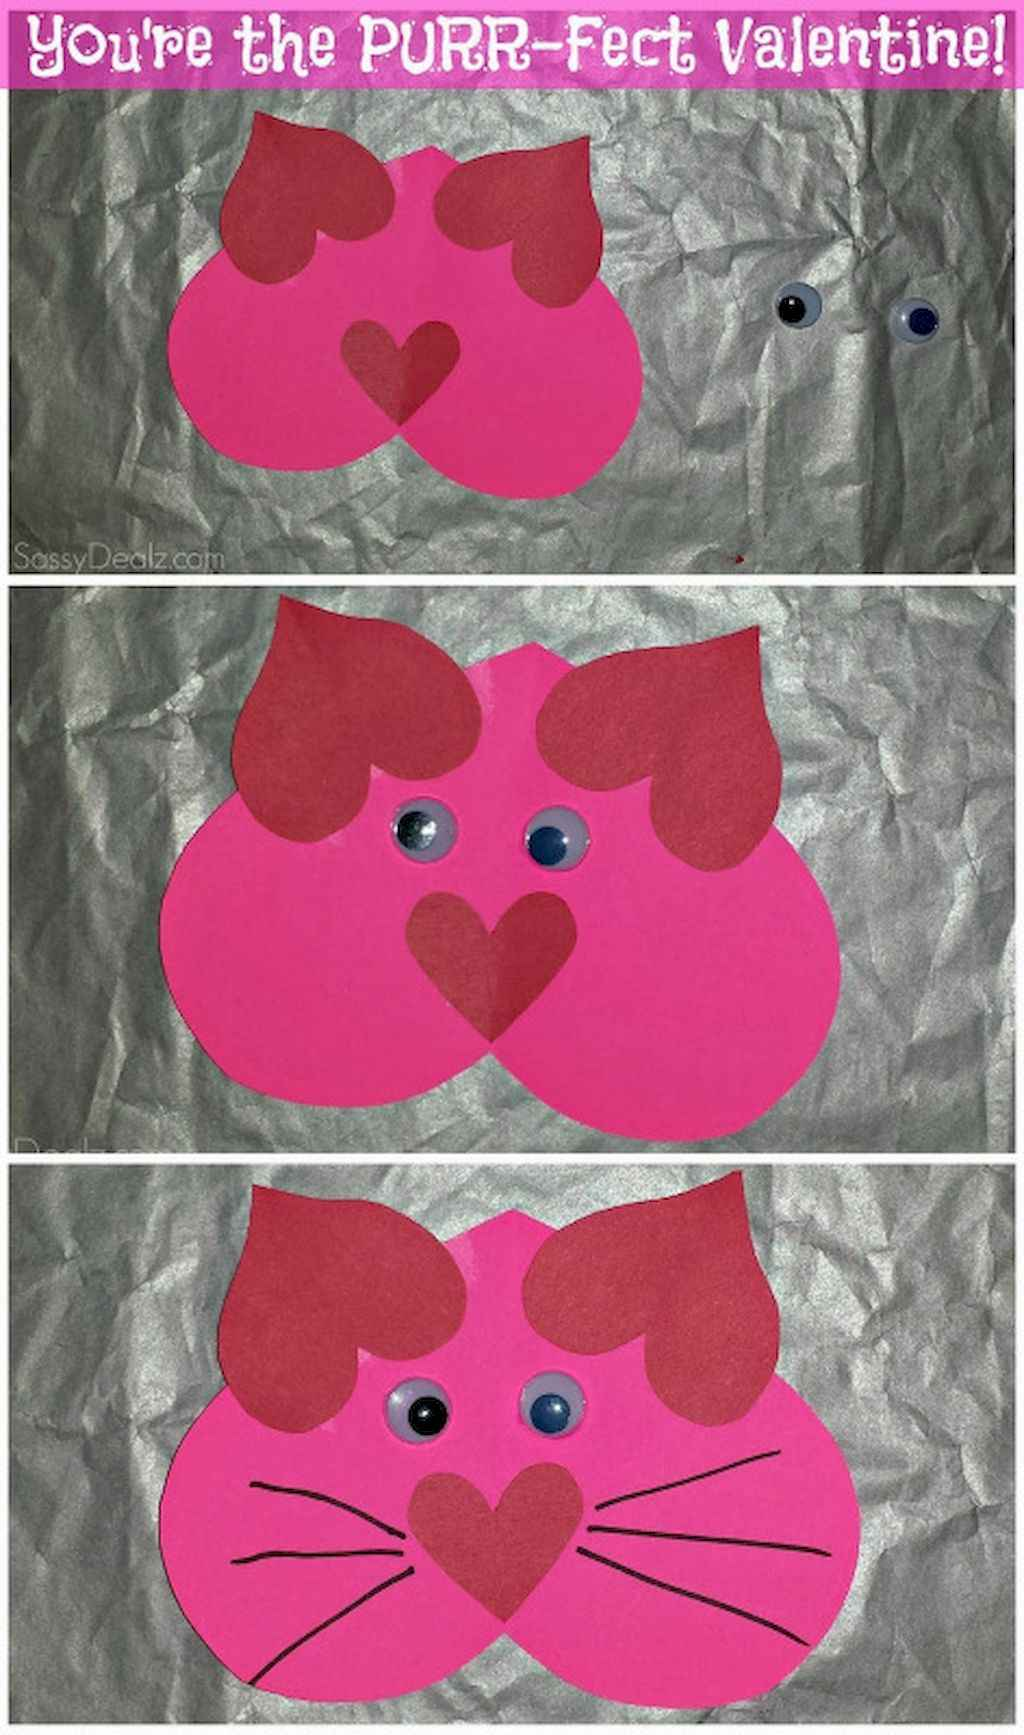 60 Romantic Valentines Crafts Ideas On A Budget (12)